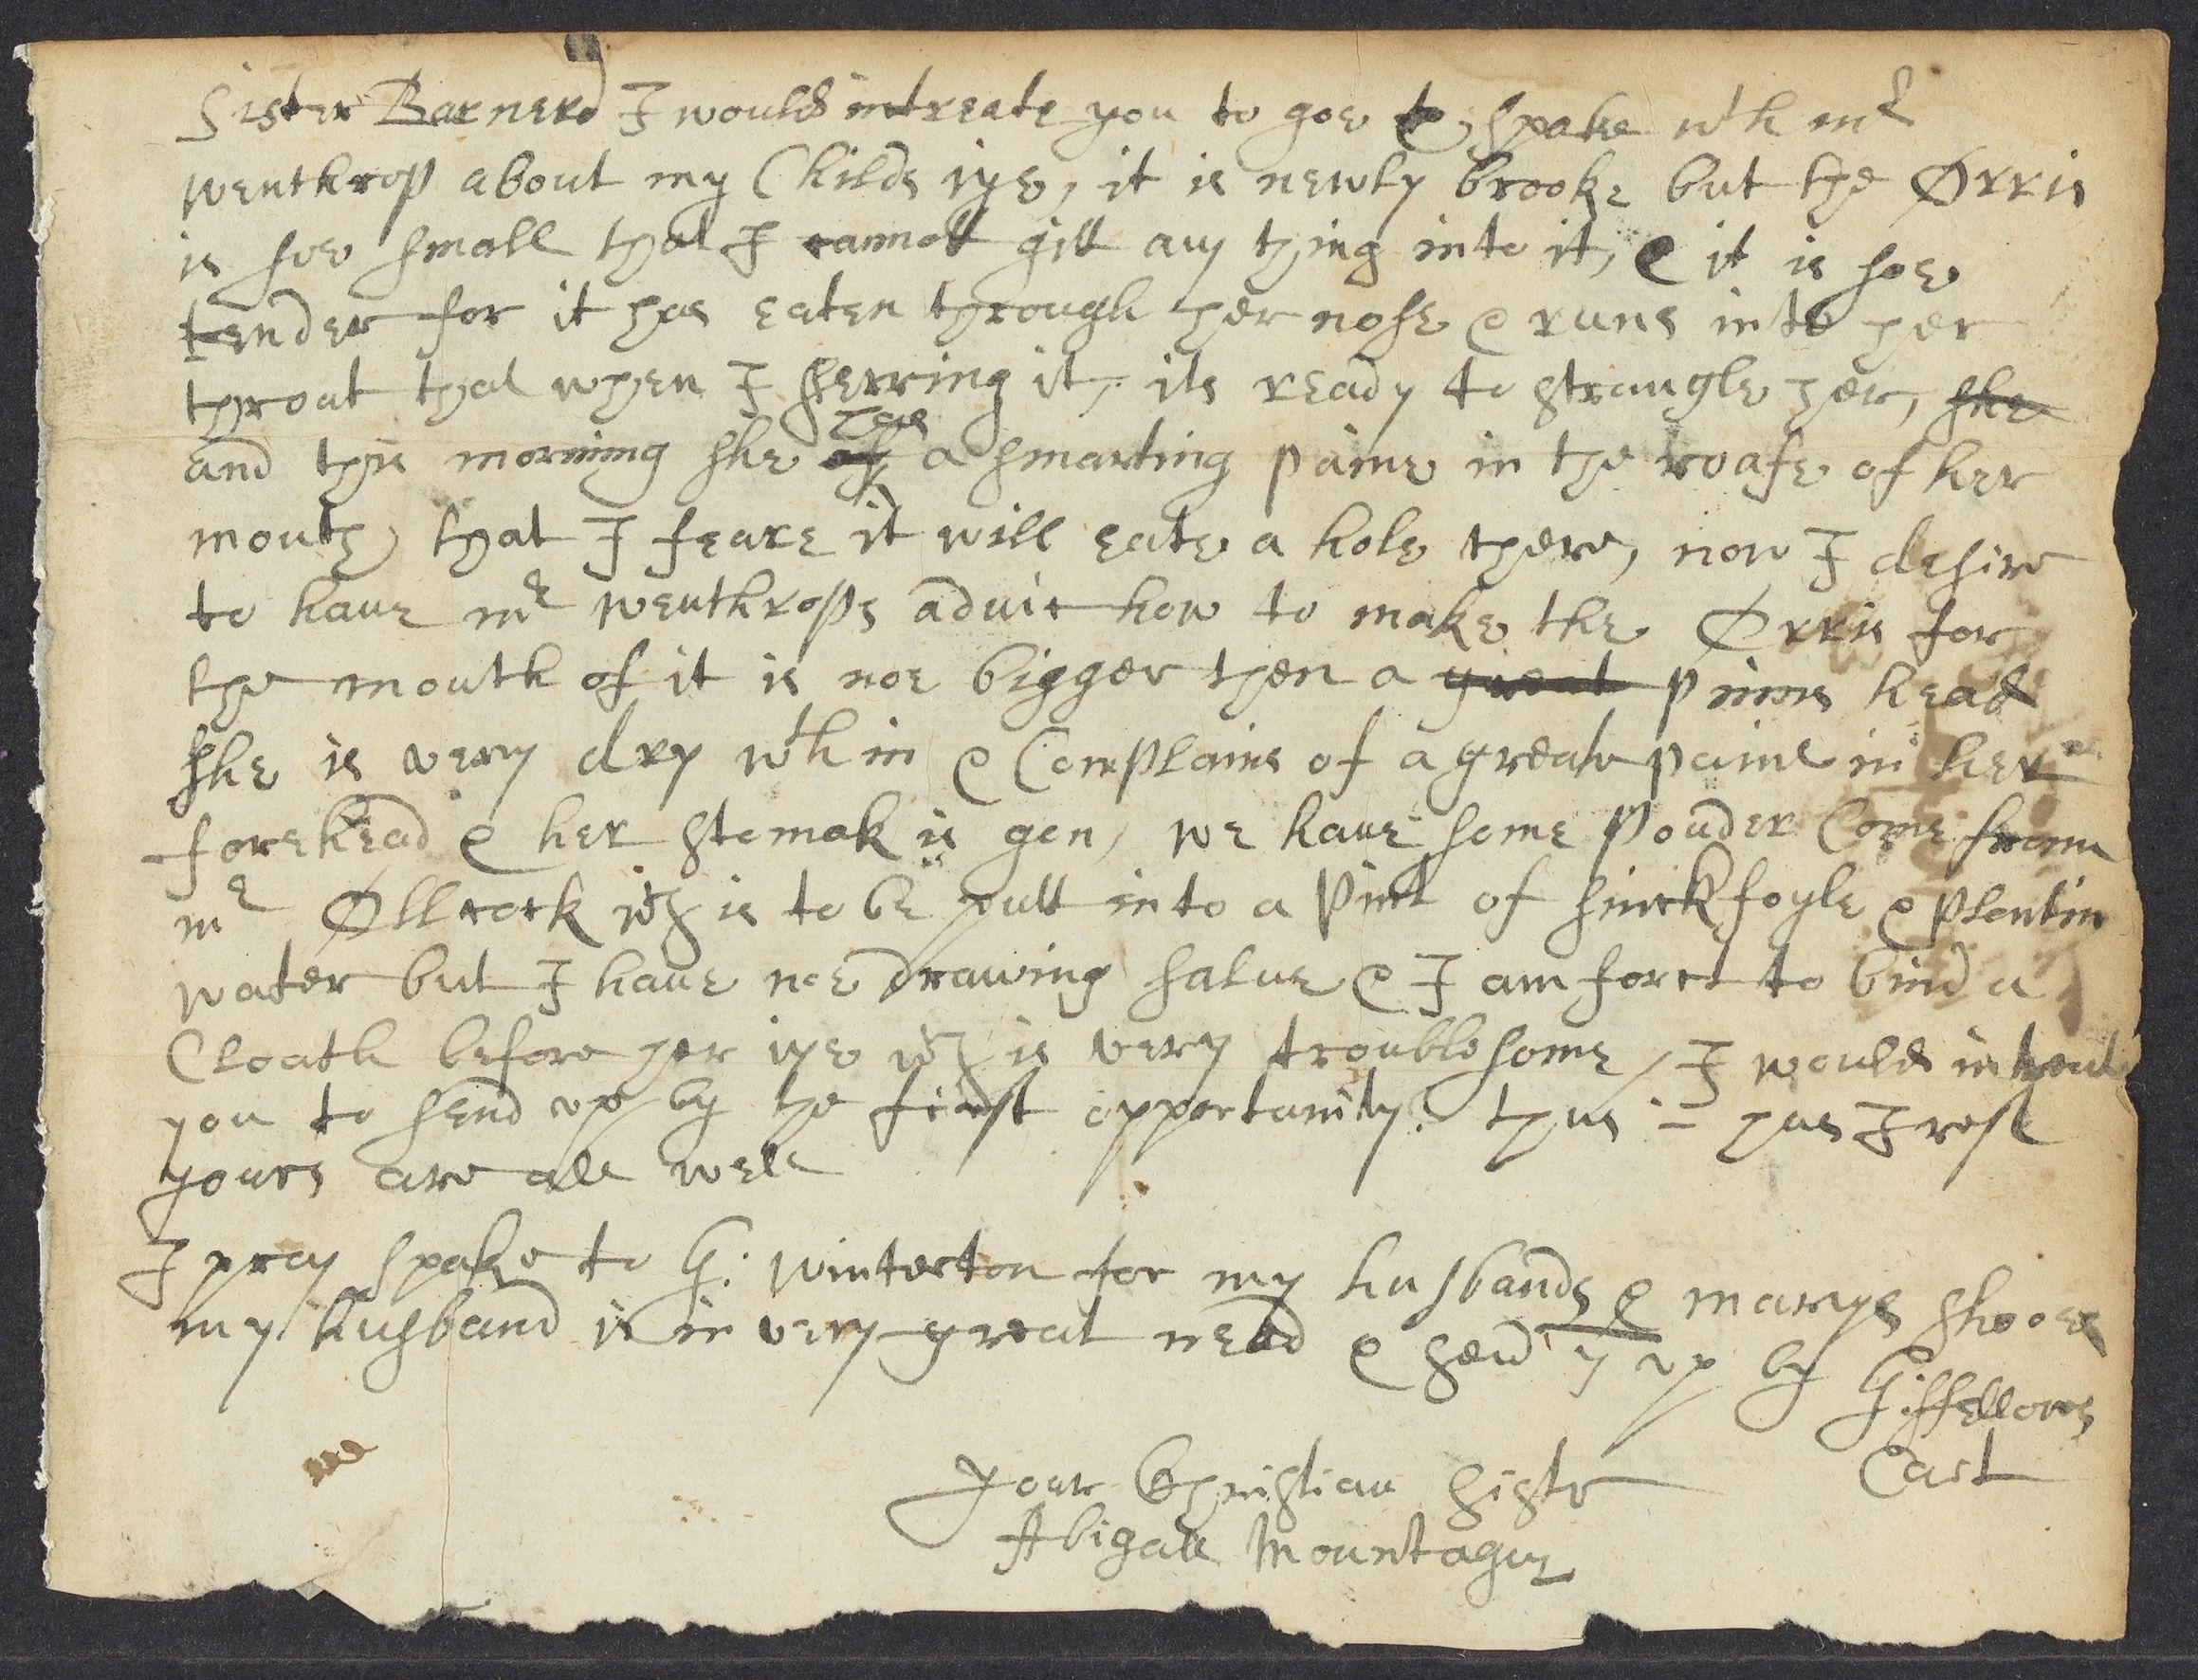 Montague, Abigale, autographed letter signed to [ ] Barnerd, 1 side (2 pages), circa 1663 July